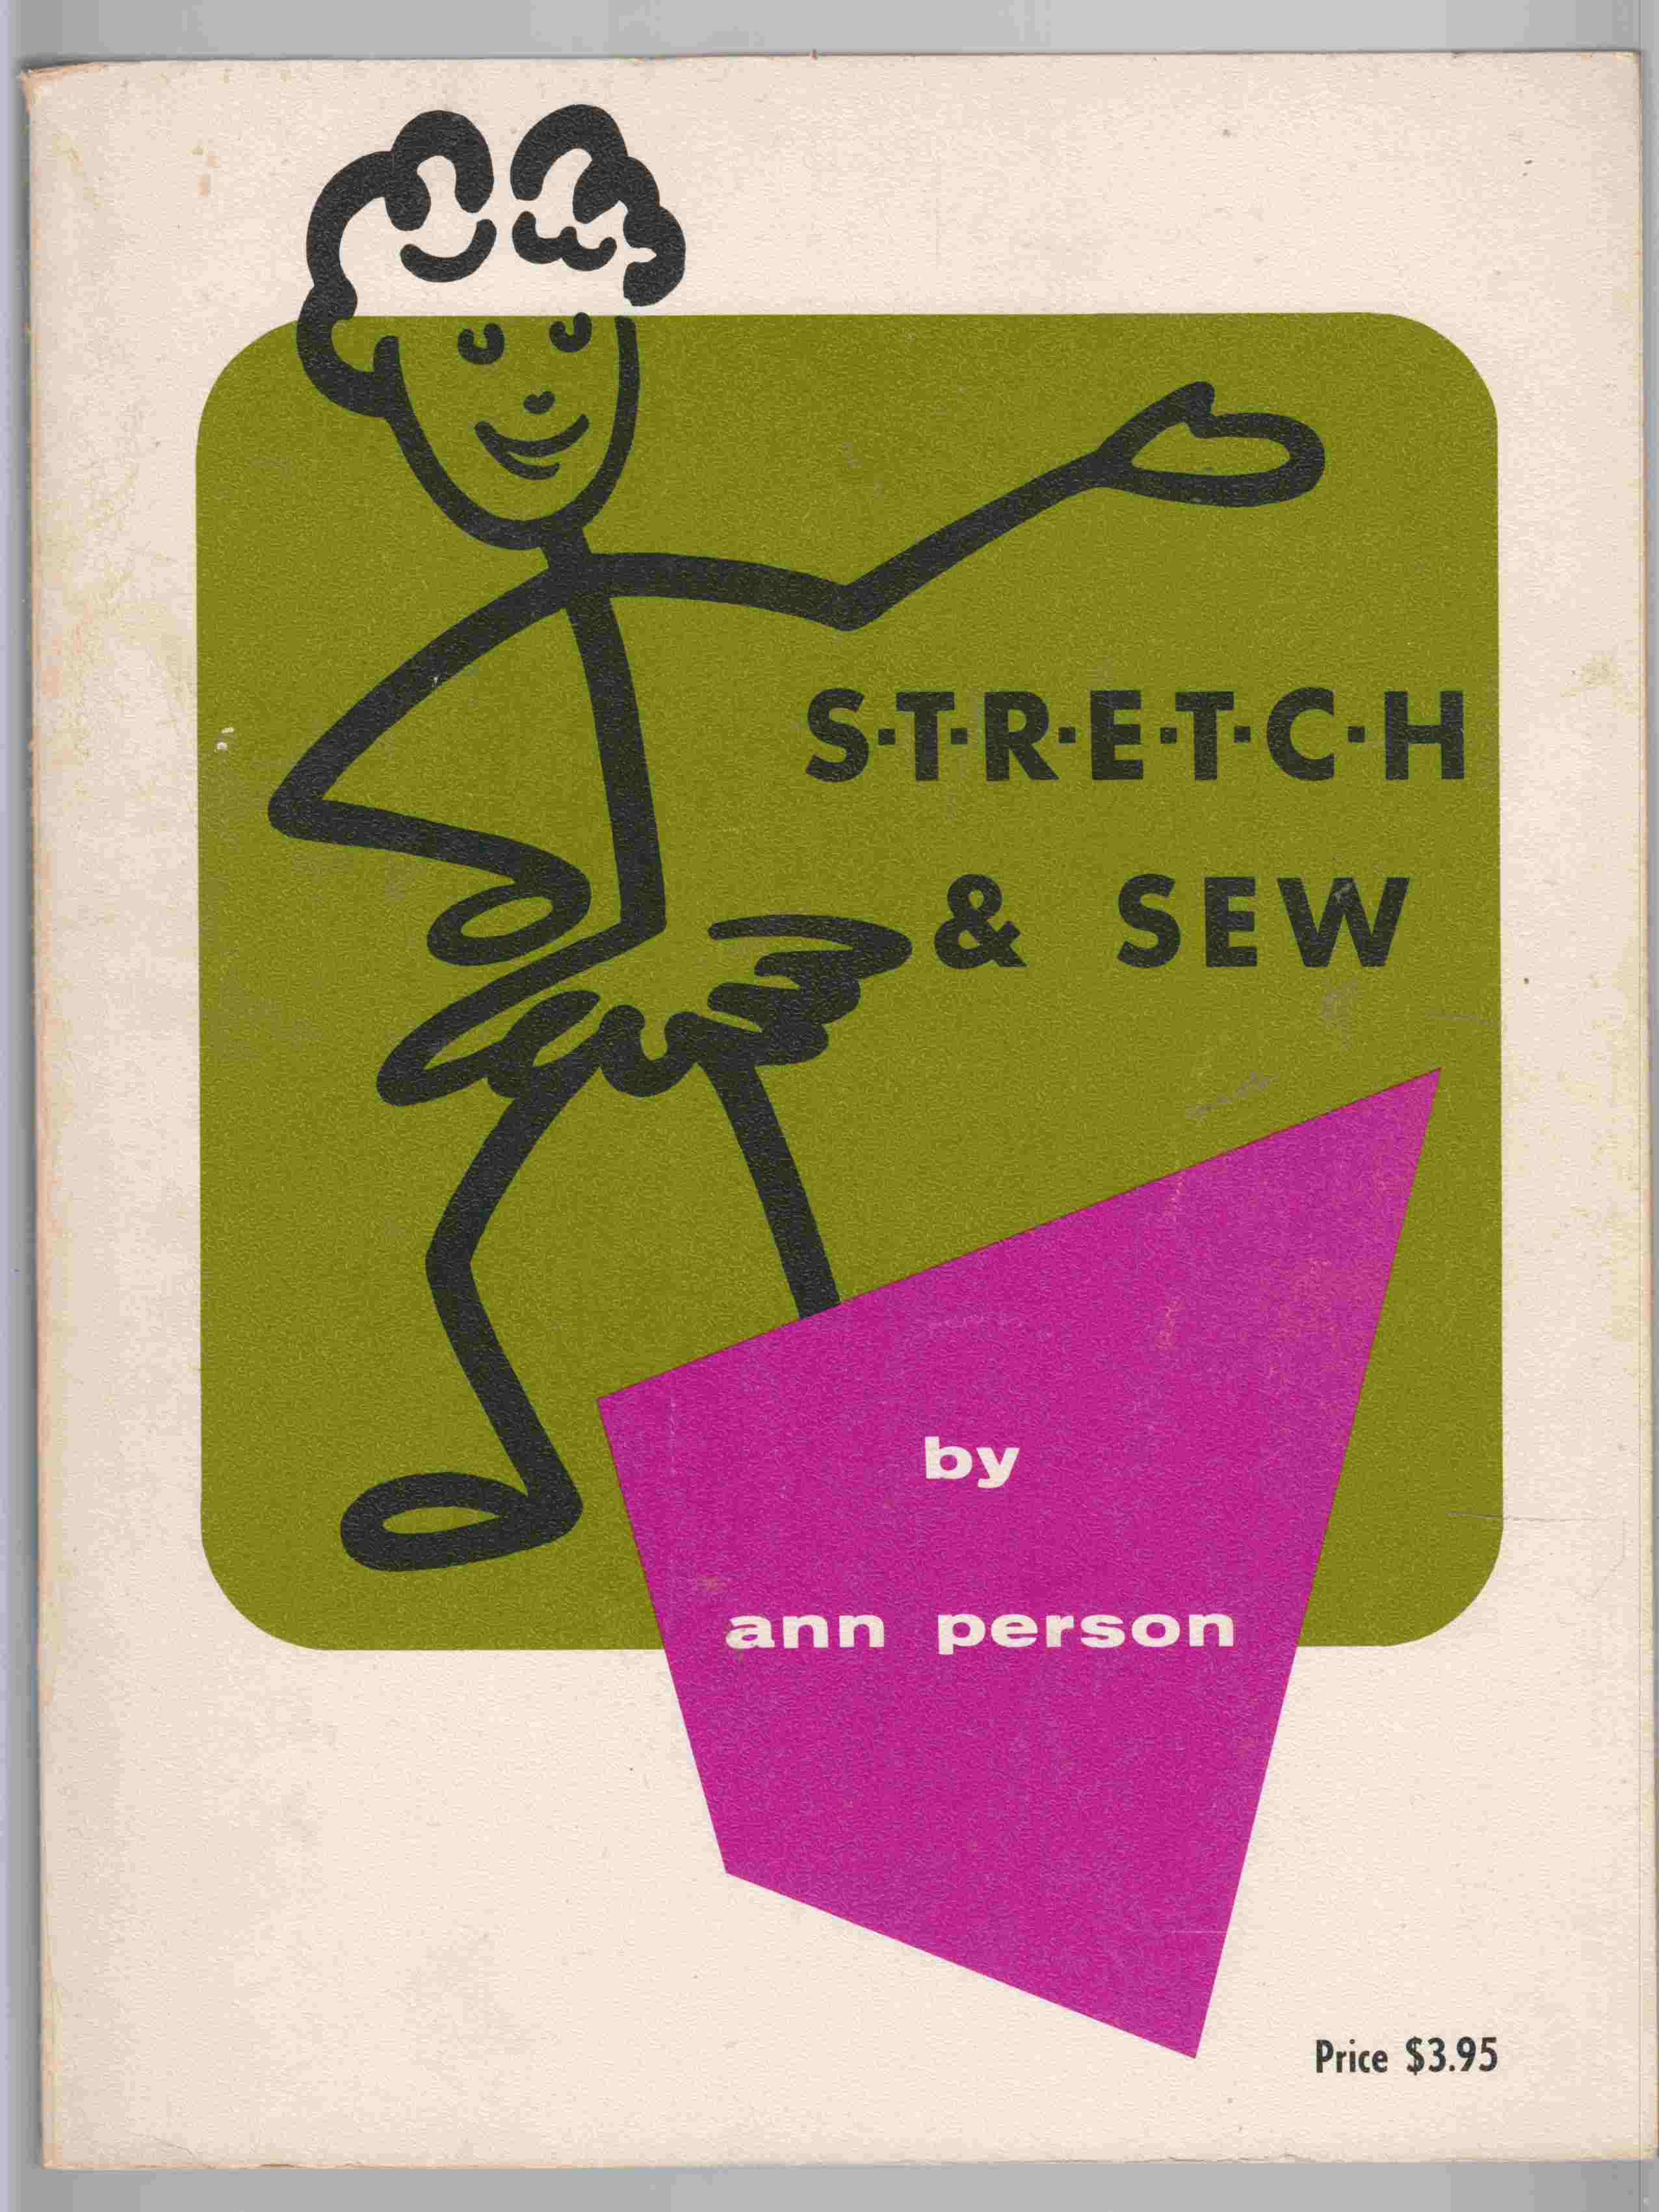 Image for The S-T-R-E-T-C-H & Sew Method of Sewing with Knit Fabric